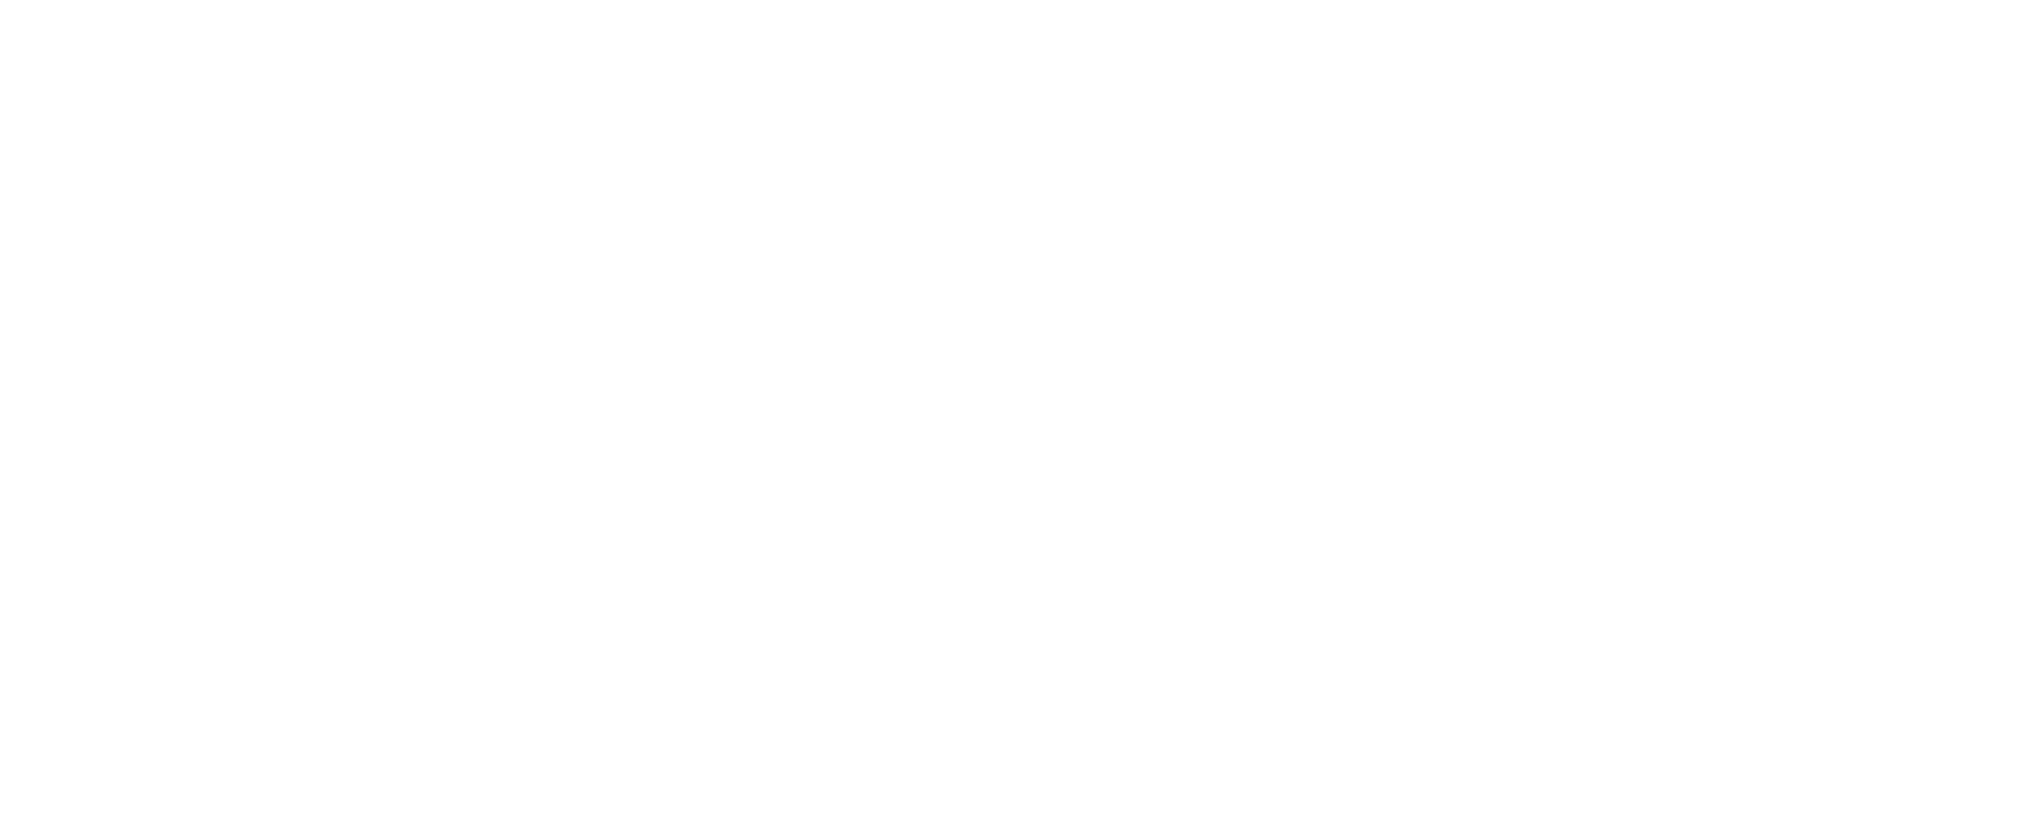 Southern Grants Forum